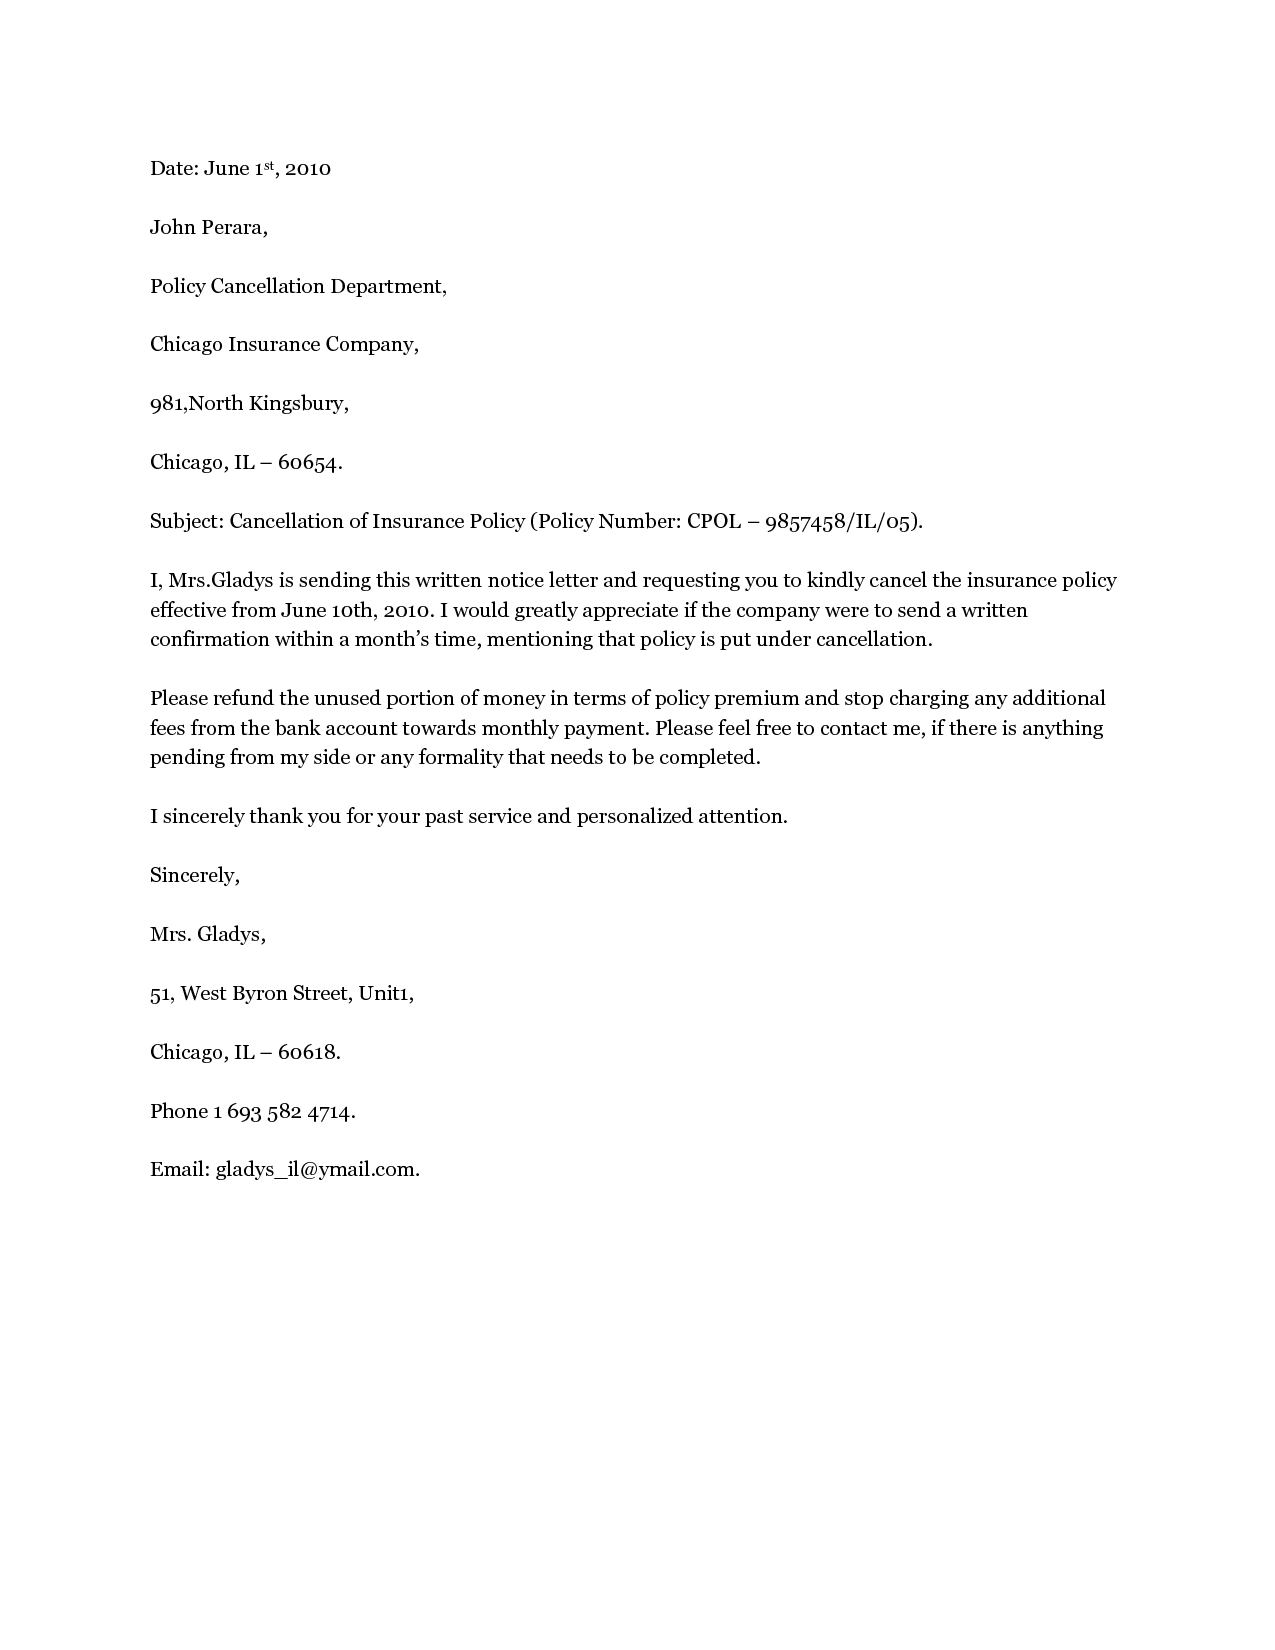 Insurance Cancellation Letter Template - 20 Luxury Termination Service Agreement Letter Sample